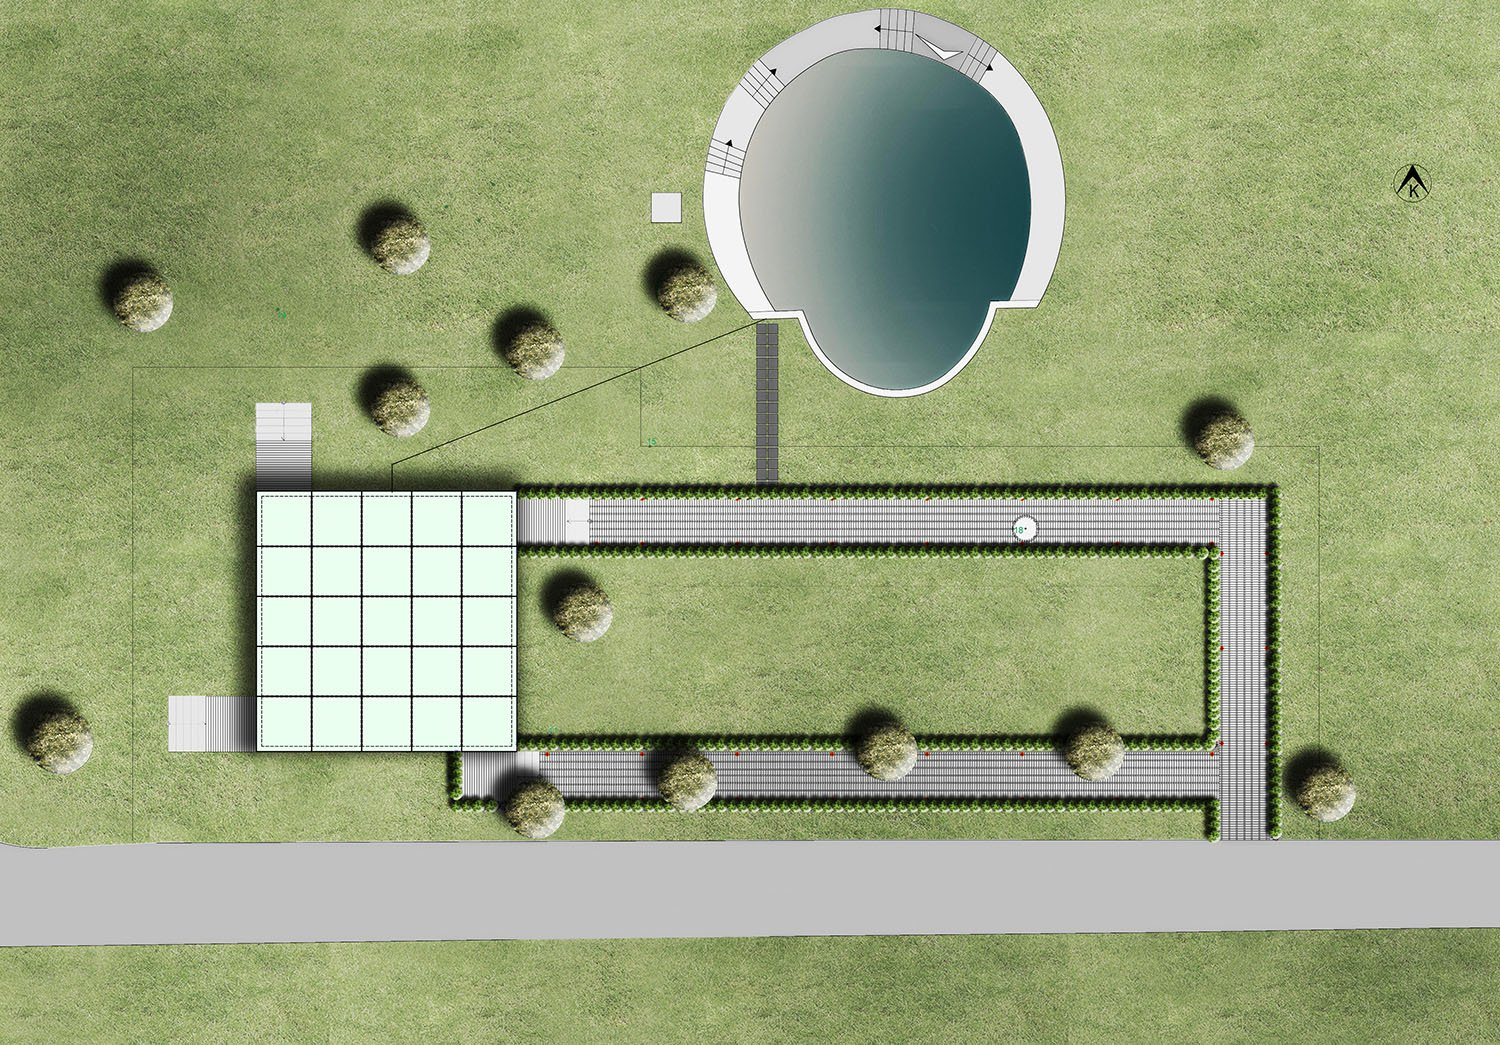 GLASS PAVILION - SITE PLAN YAZGAN DESIGN ARCHITECTURE}